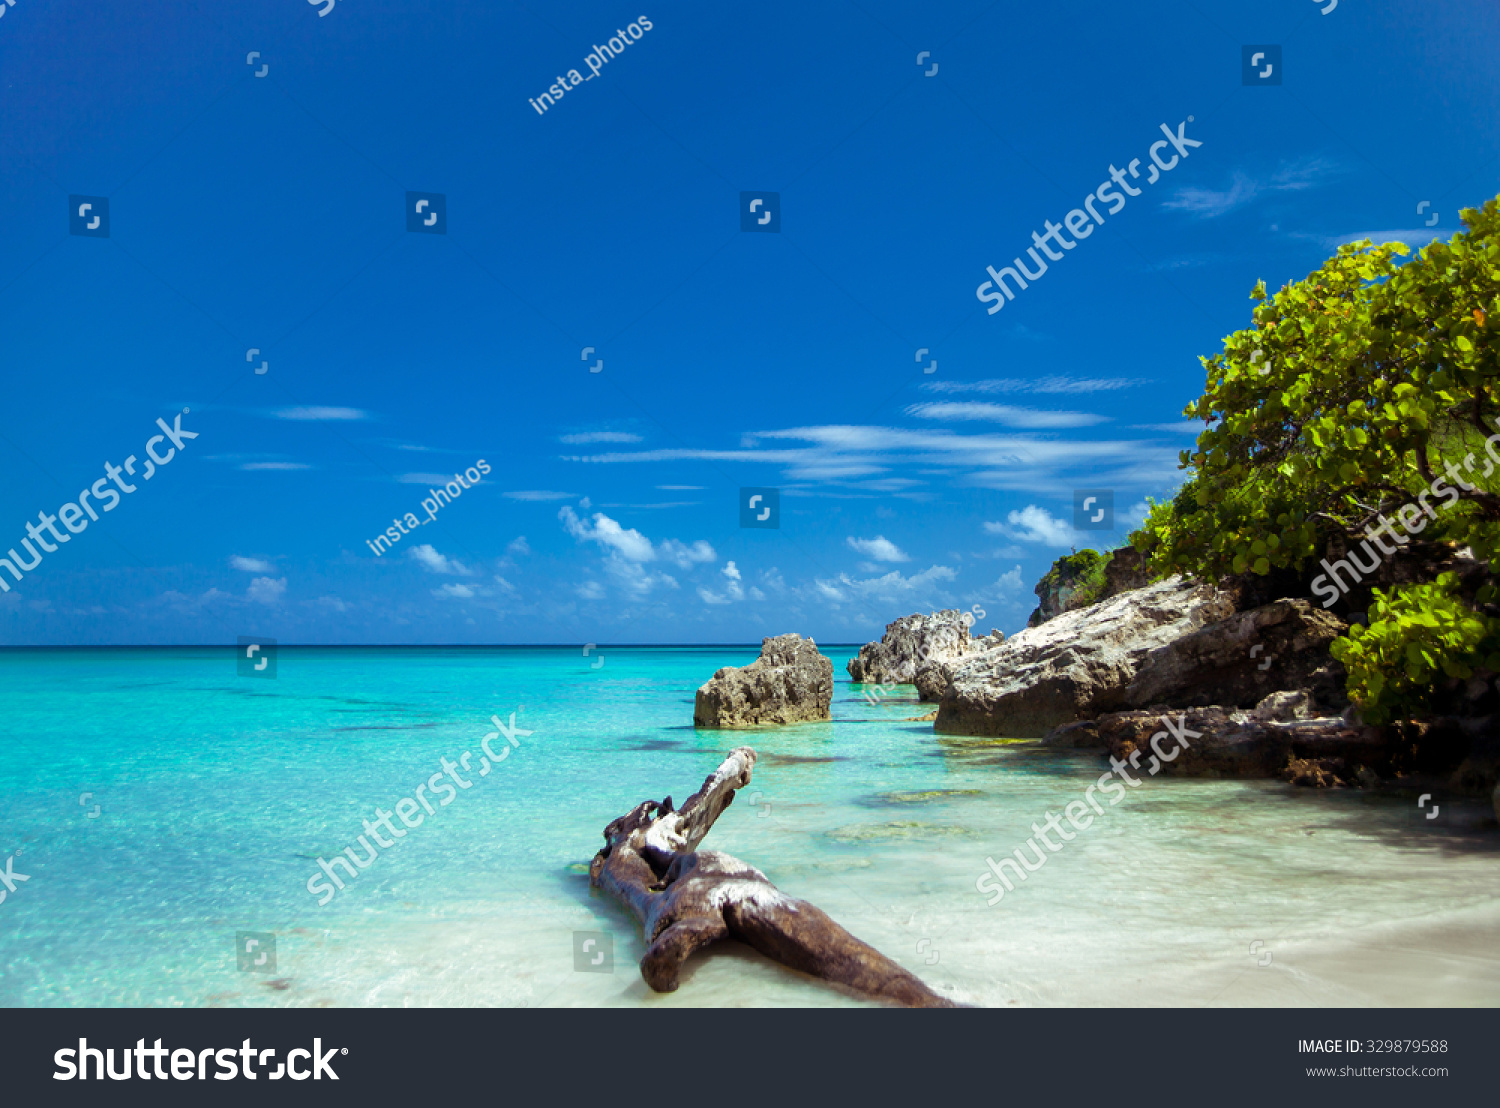 Caribbean island Beautiful uninhabited island in the Caribbean Sea The beautiful nature incredible scenery The sea breeze Tropical Island Paradise tropical beach with turquoise water